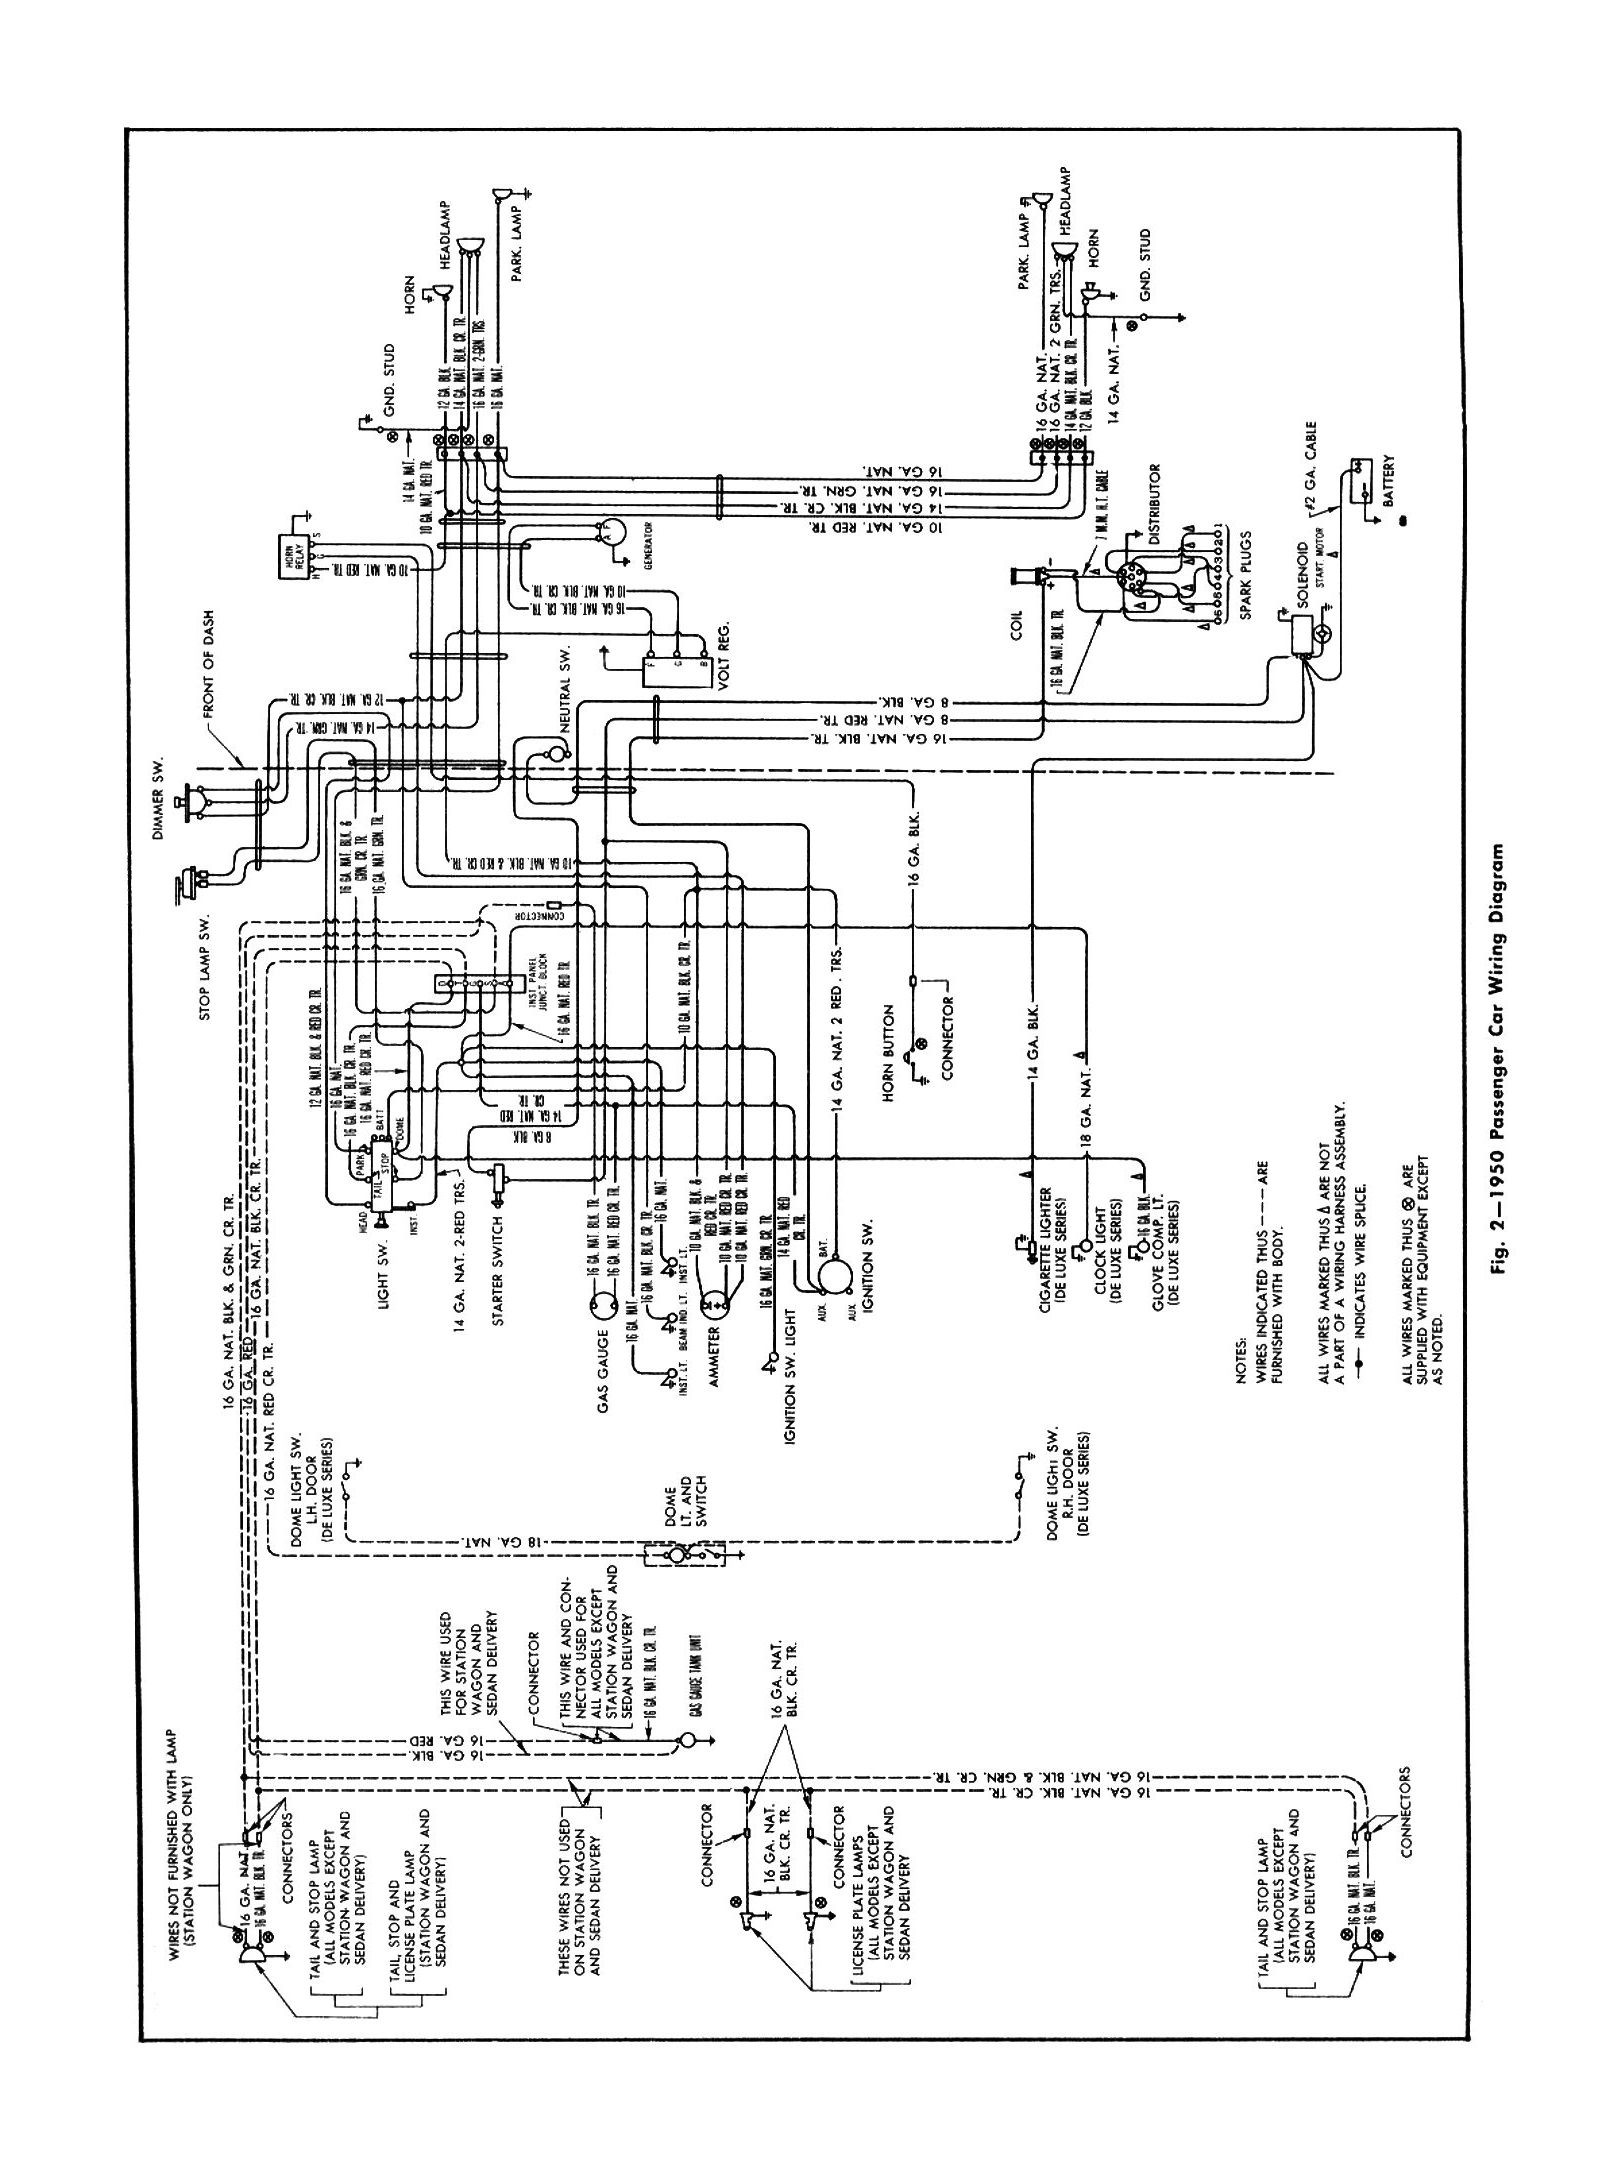 chevy wiring diagrams rh chevy oldcarmanualproject com 1951 Mercury Wiring Diagram Wiring Diagram for 1950 GMC